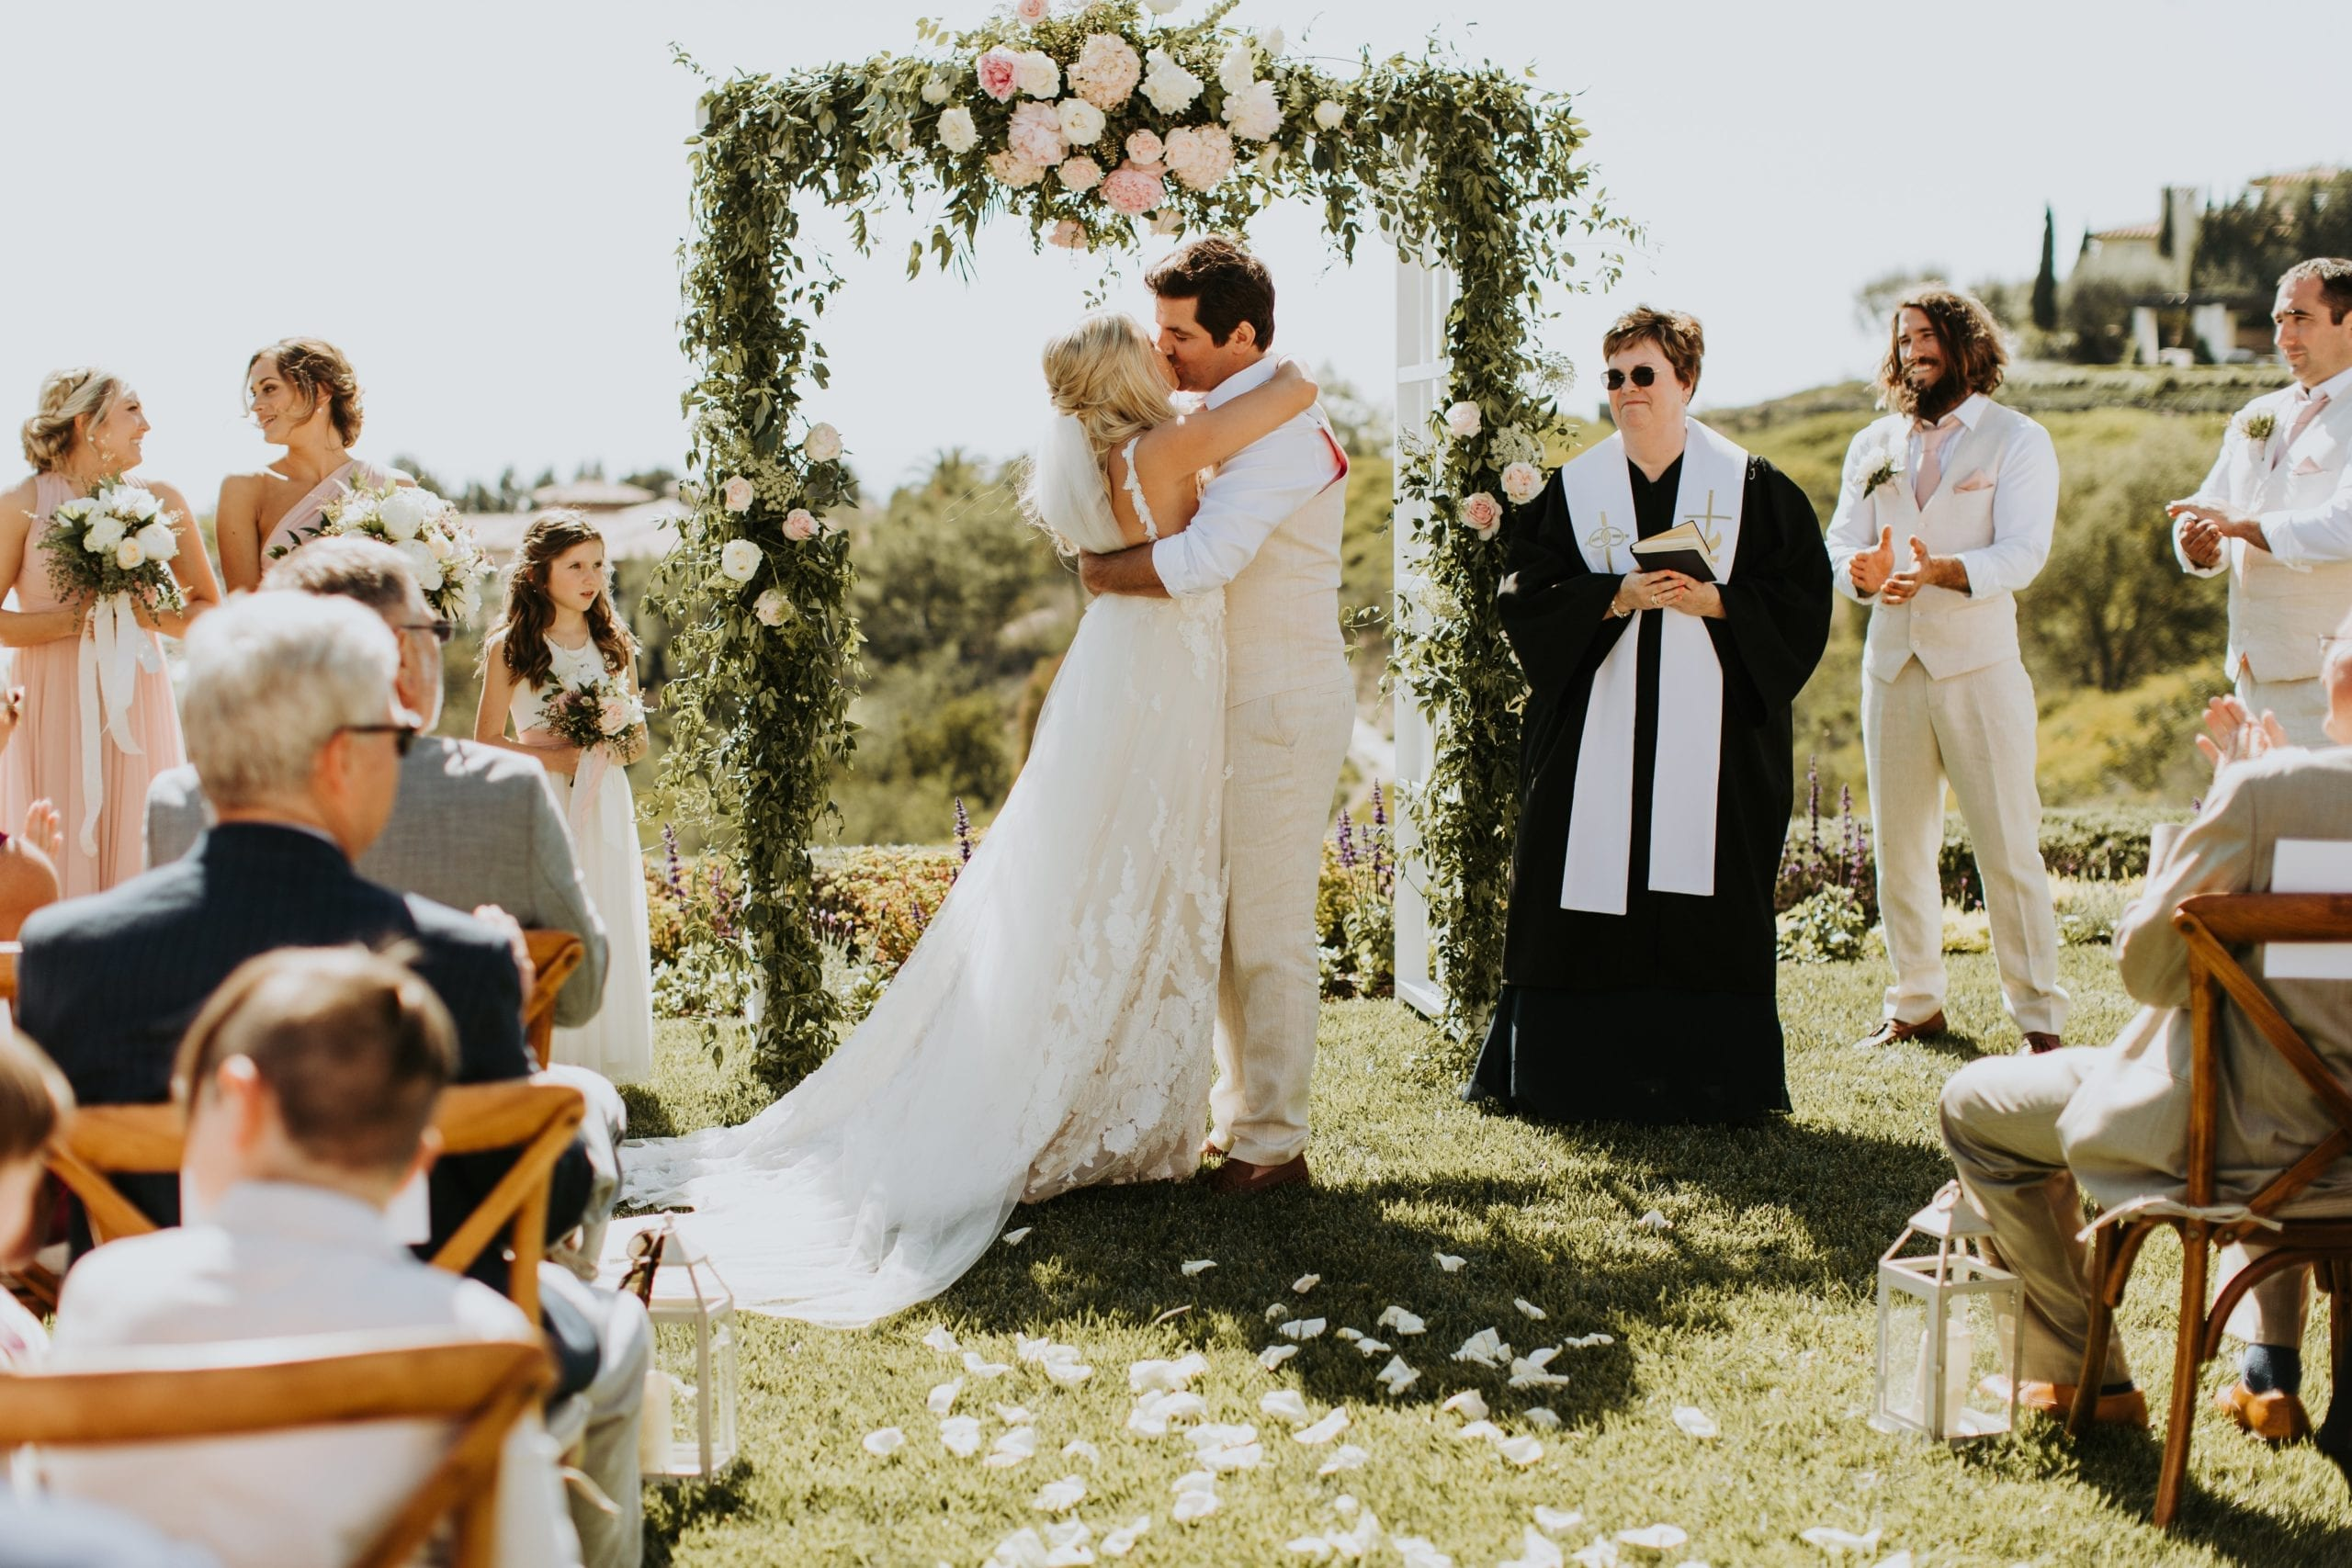 Real Weddings | Vinka Design | Real Brides Wearing Vinka Gowns | Camille and Aaron kissing in archway at ceremony